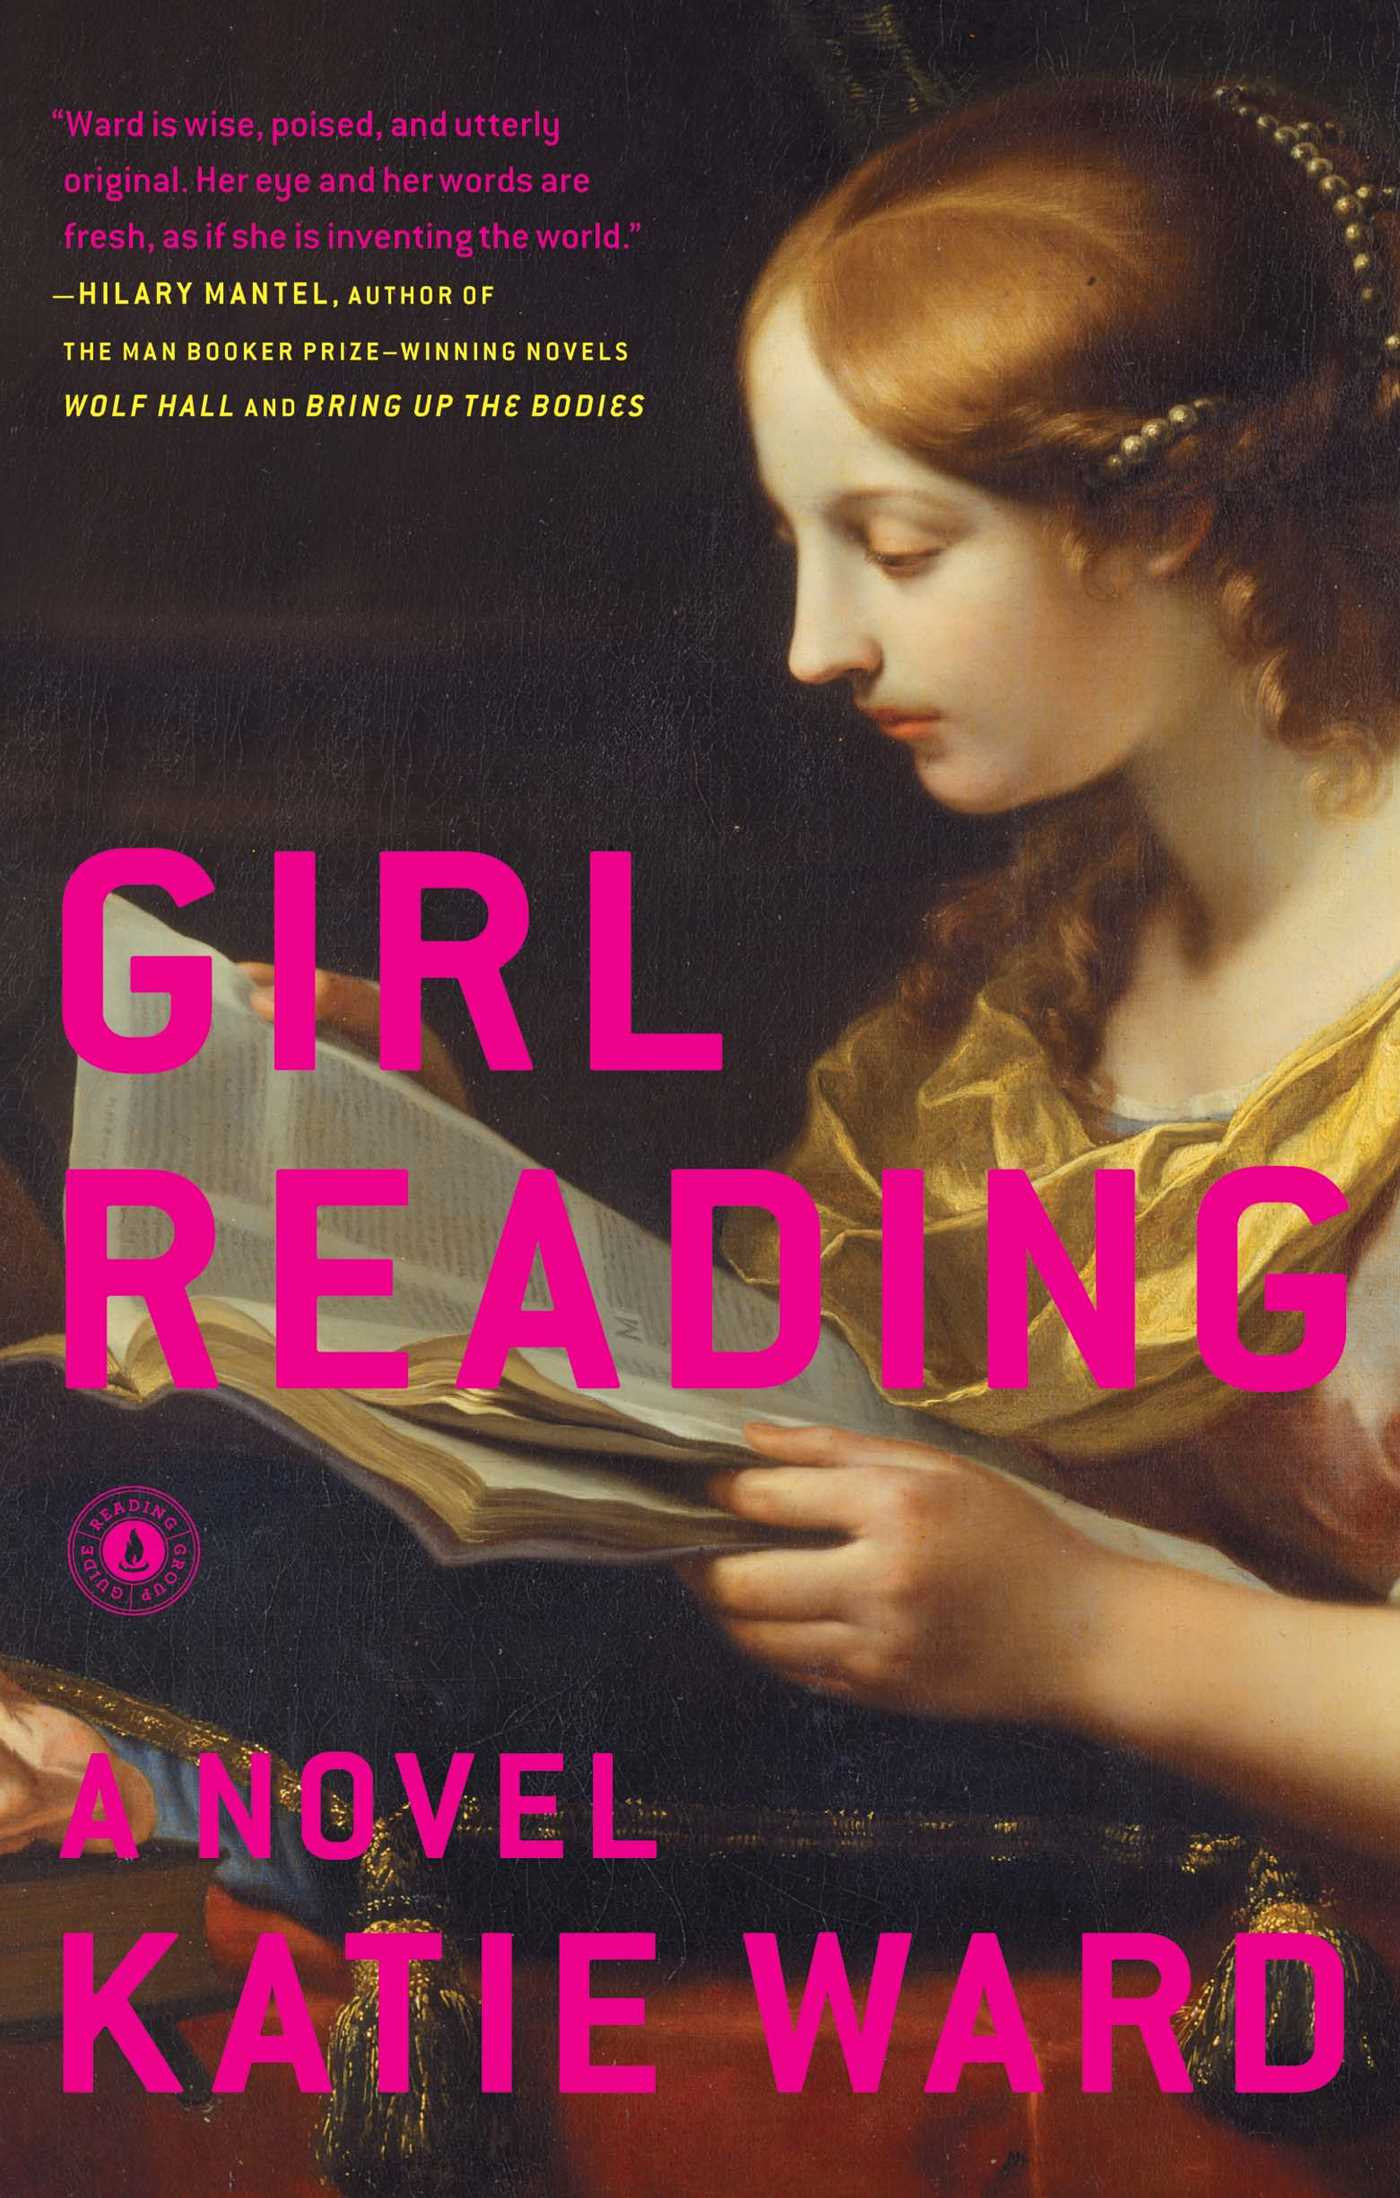 Girl-reading-9781451657326_hr